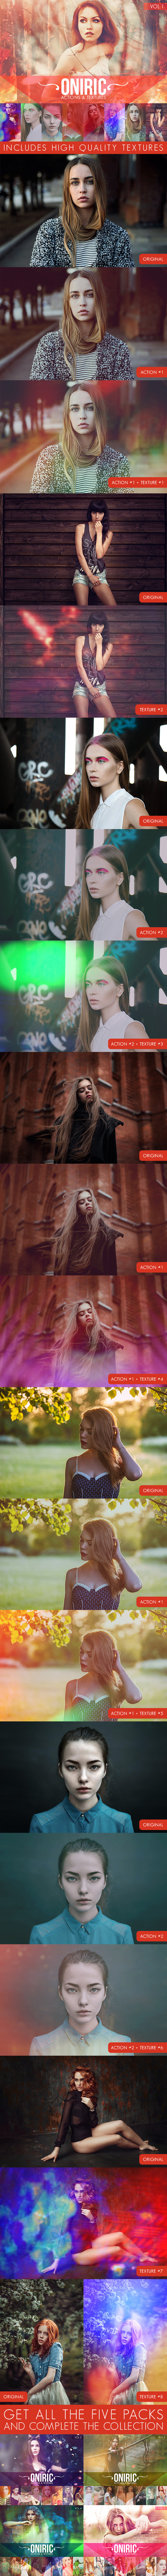 GraphicRiver Oniric Actions and Textures Vol.1 11760046